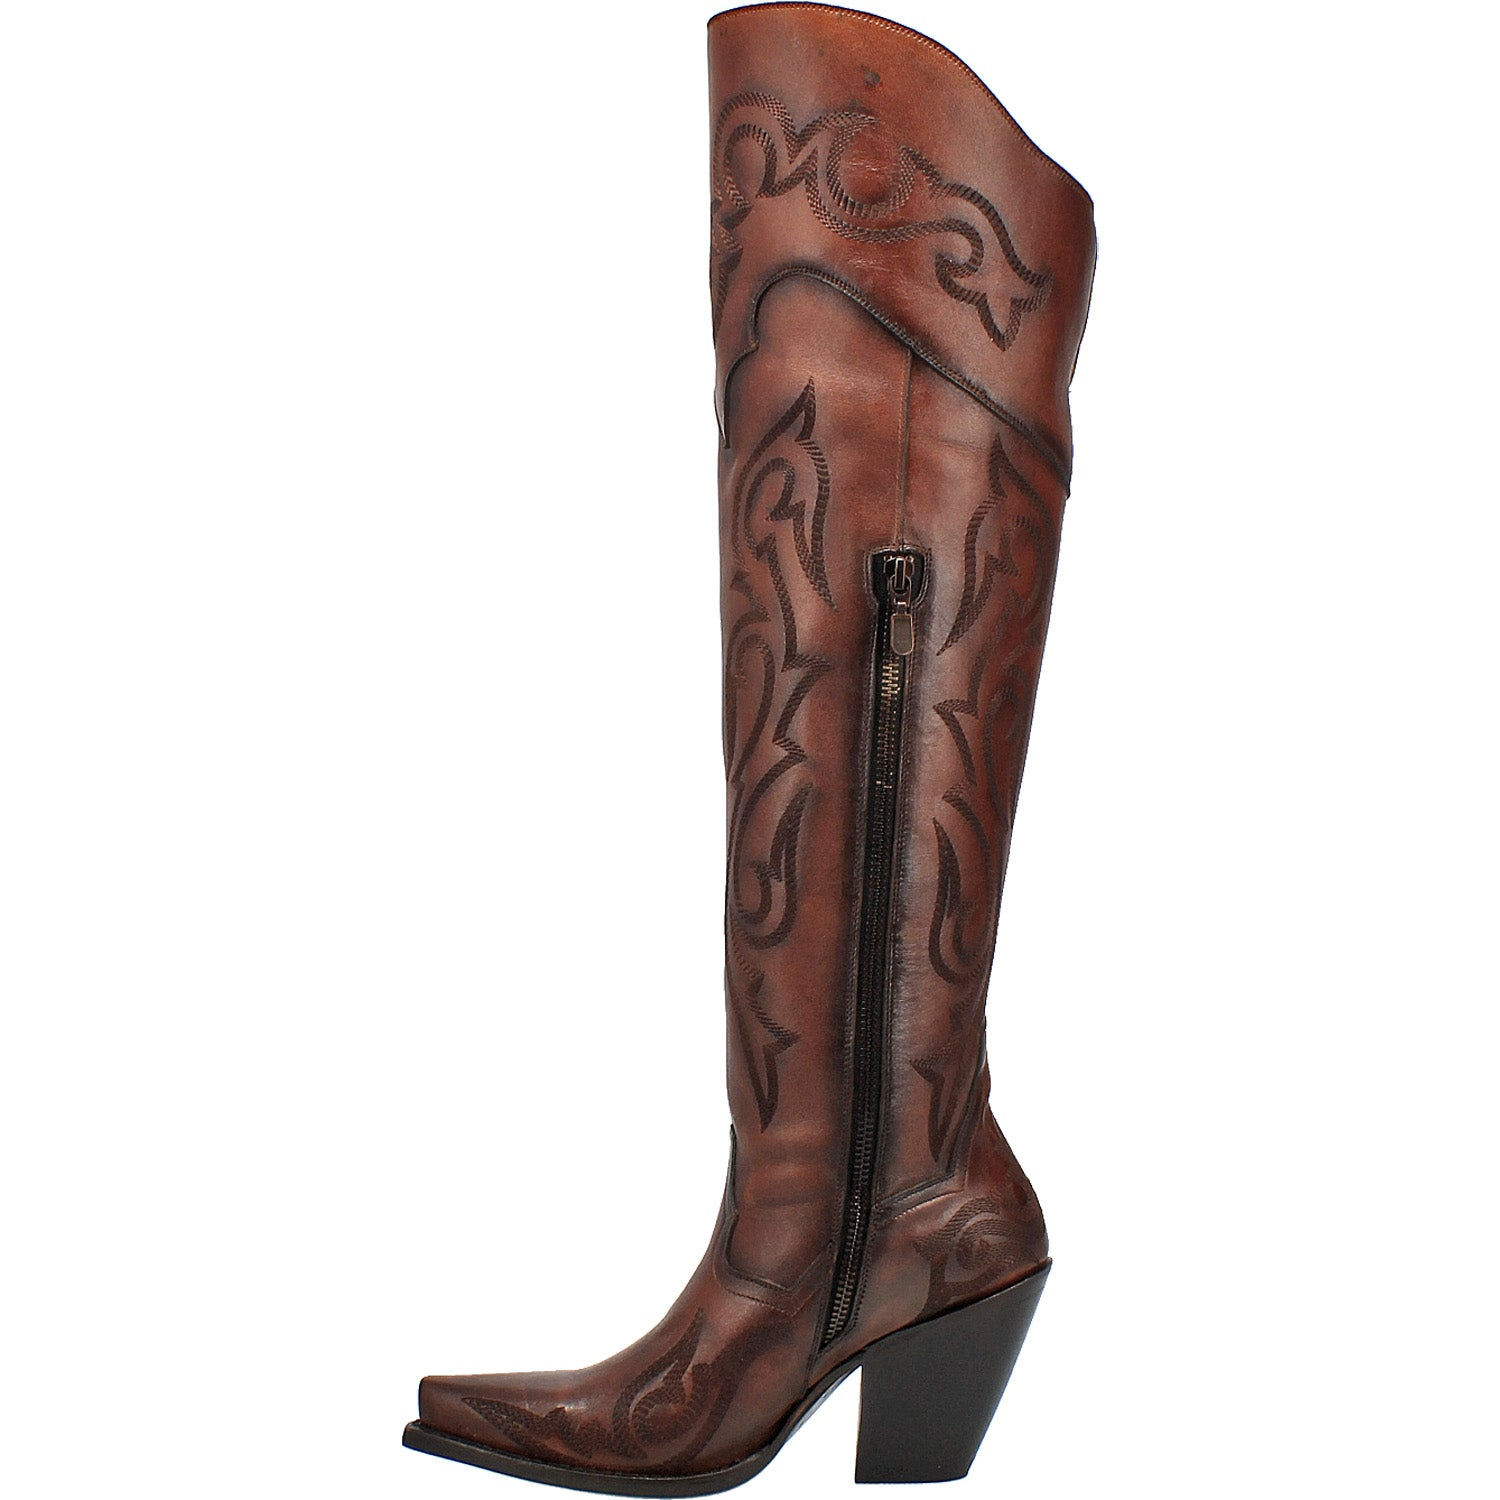 SEDUCTRESS LEATHER BOOT 15677892198442